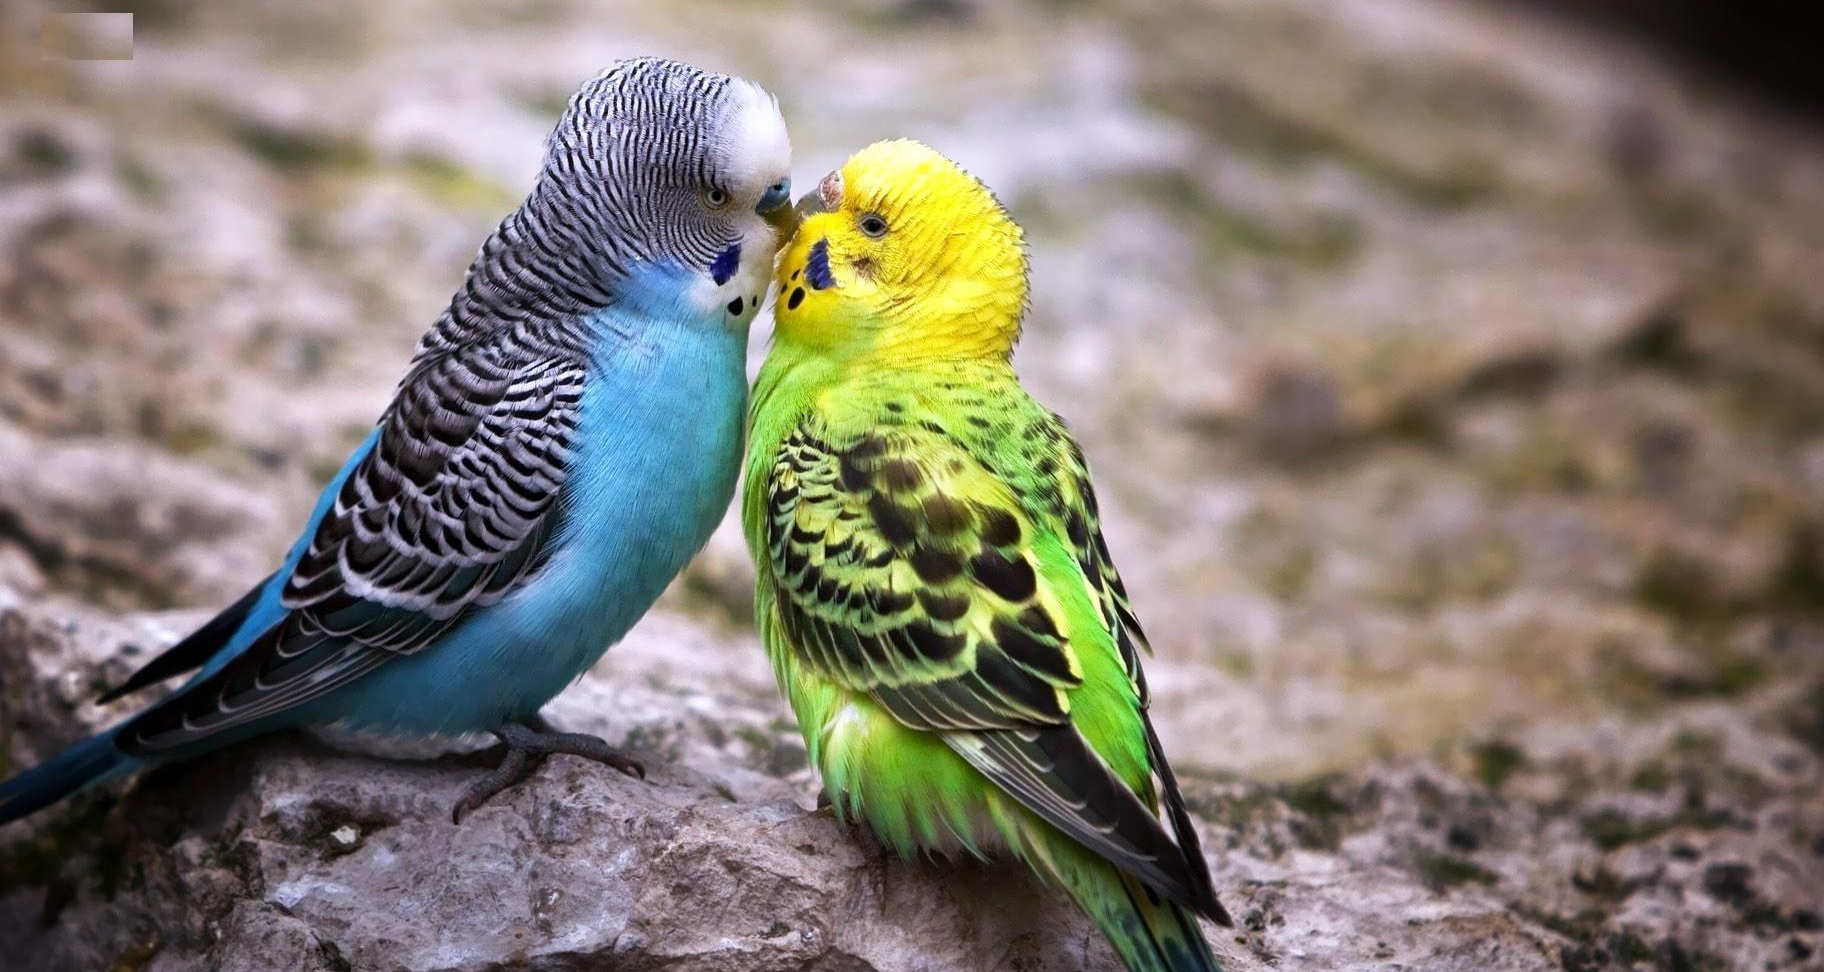 Budgerigar Desktop Wallpaper | Budgerigar Images | Cool Wallpapers